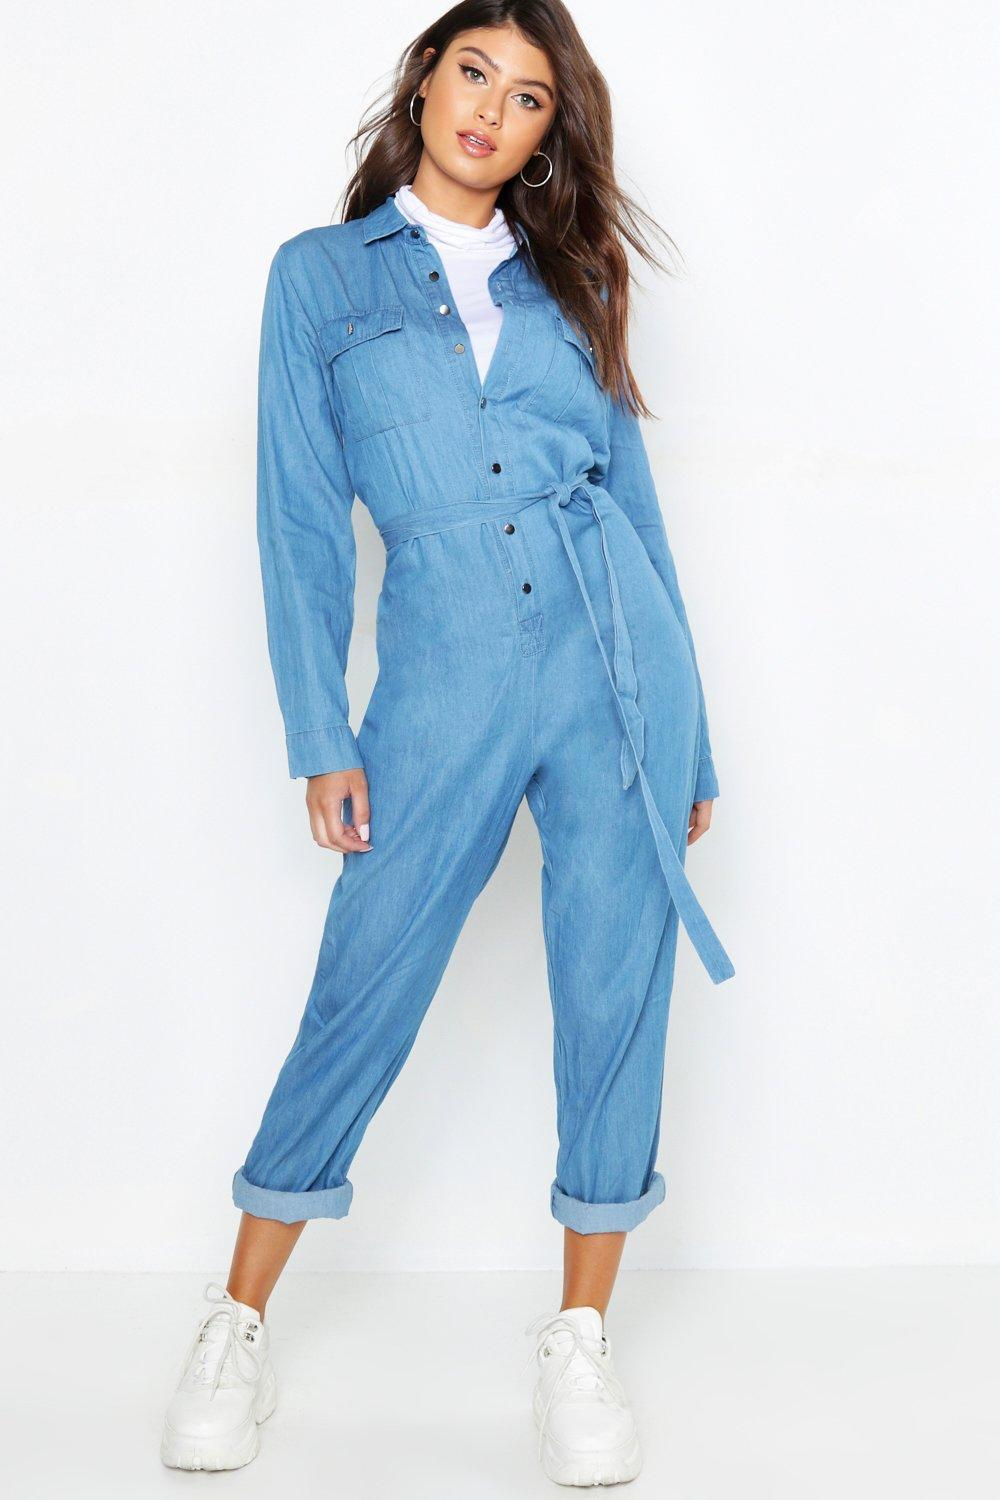 f54ecaf1ab Lyst - Boohoo Tie Waist Utility Denim Boilersuit in Blue